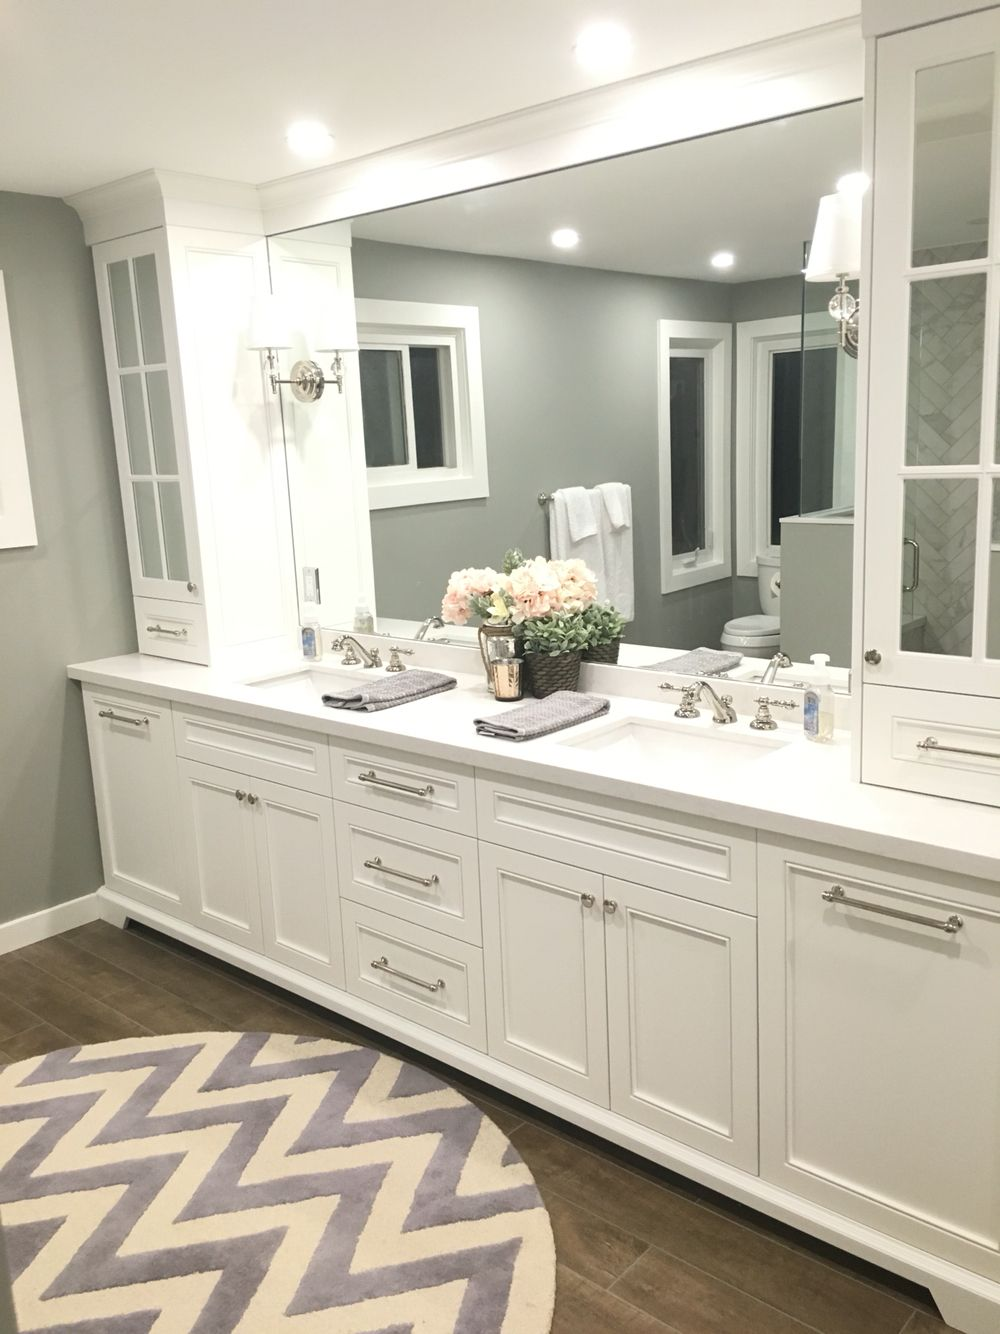 ideal bathroom vanity lighting design ideas. Best Bathroom.. Look More! Unique Tiny Home Bathroom\u0027s Design Ideas Remodel Decor Rugs Small Tile Vanity Organization DIY Farmhouse Master Storage Rustic Ideal Bathroom Lighting E